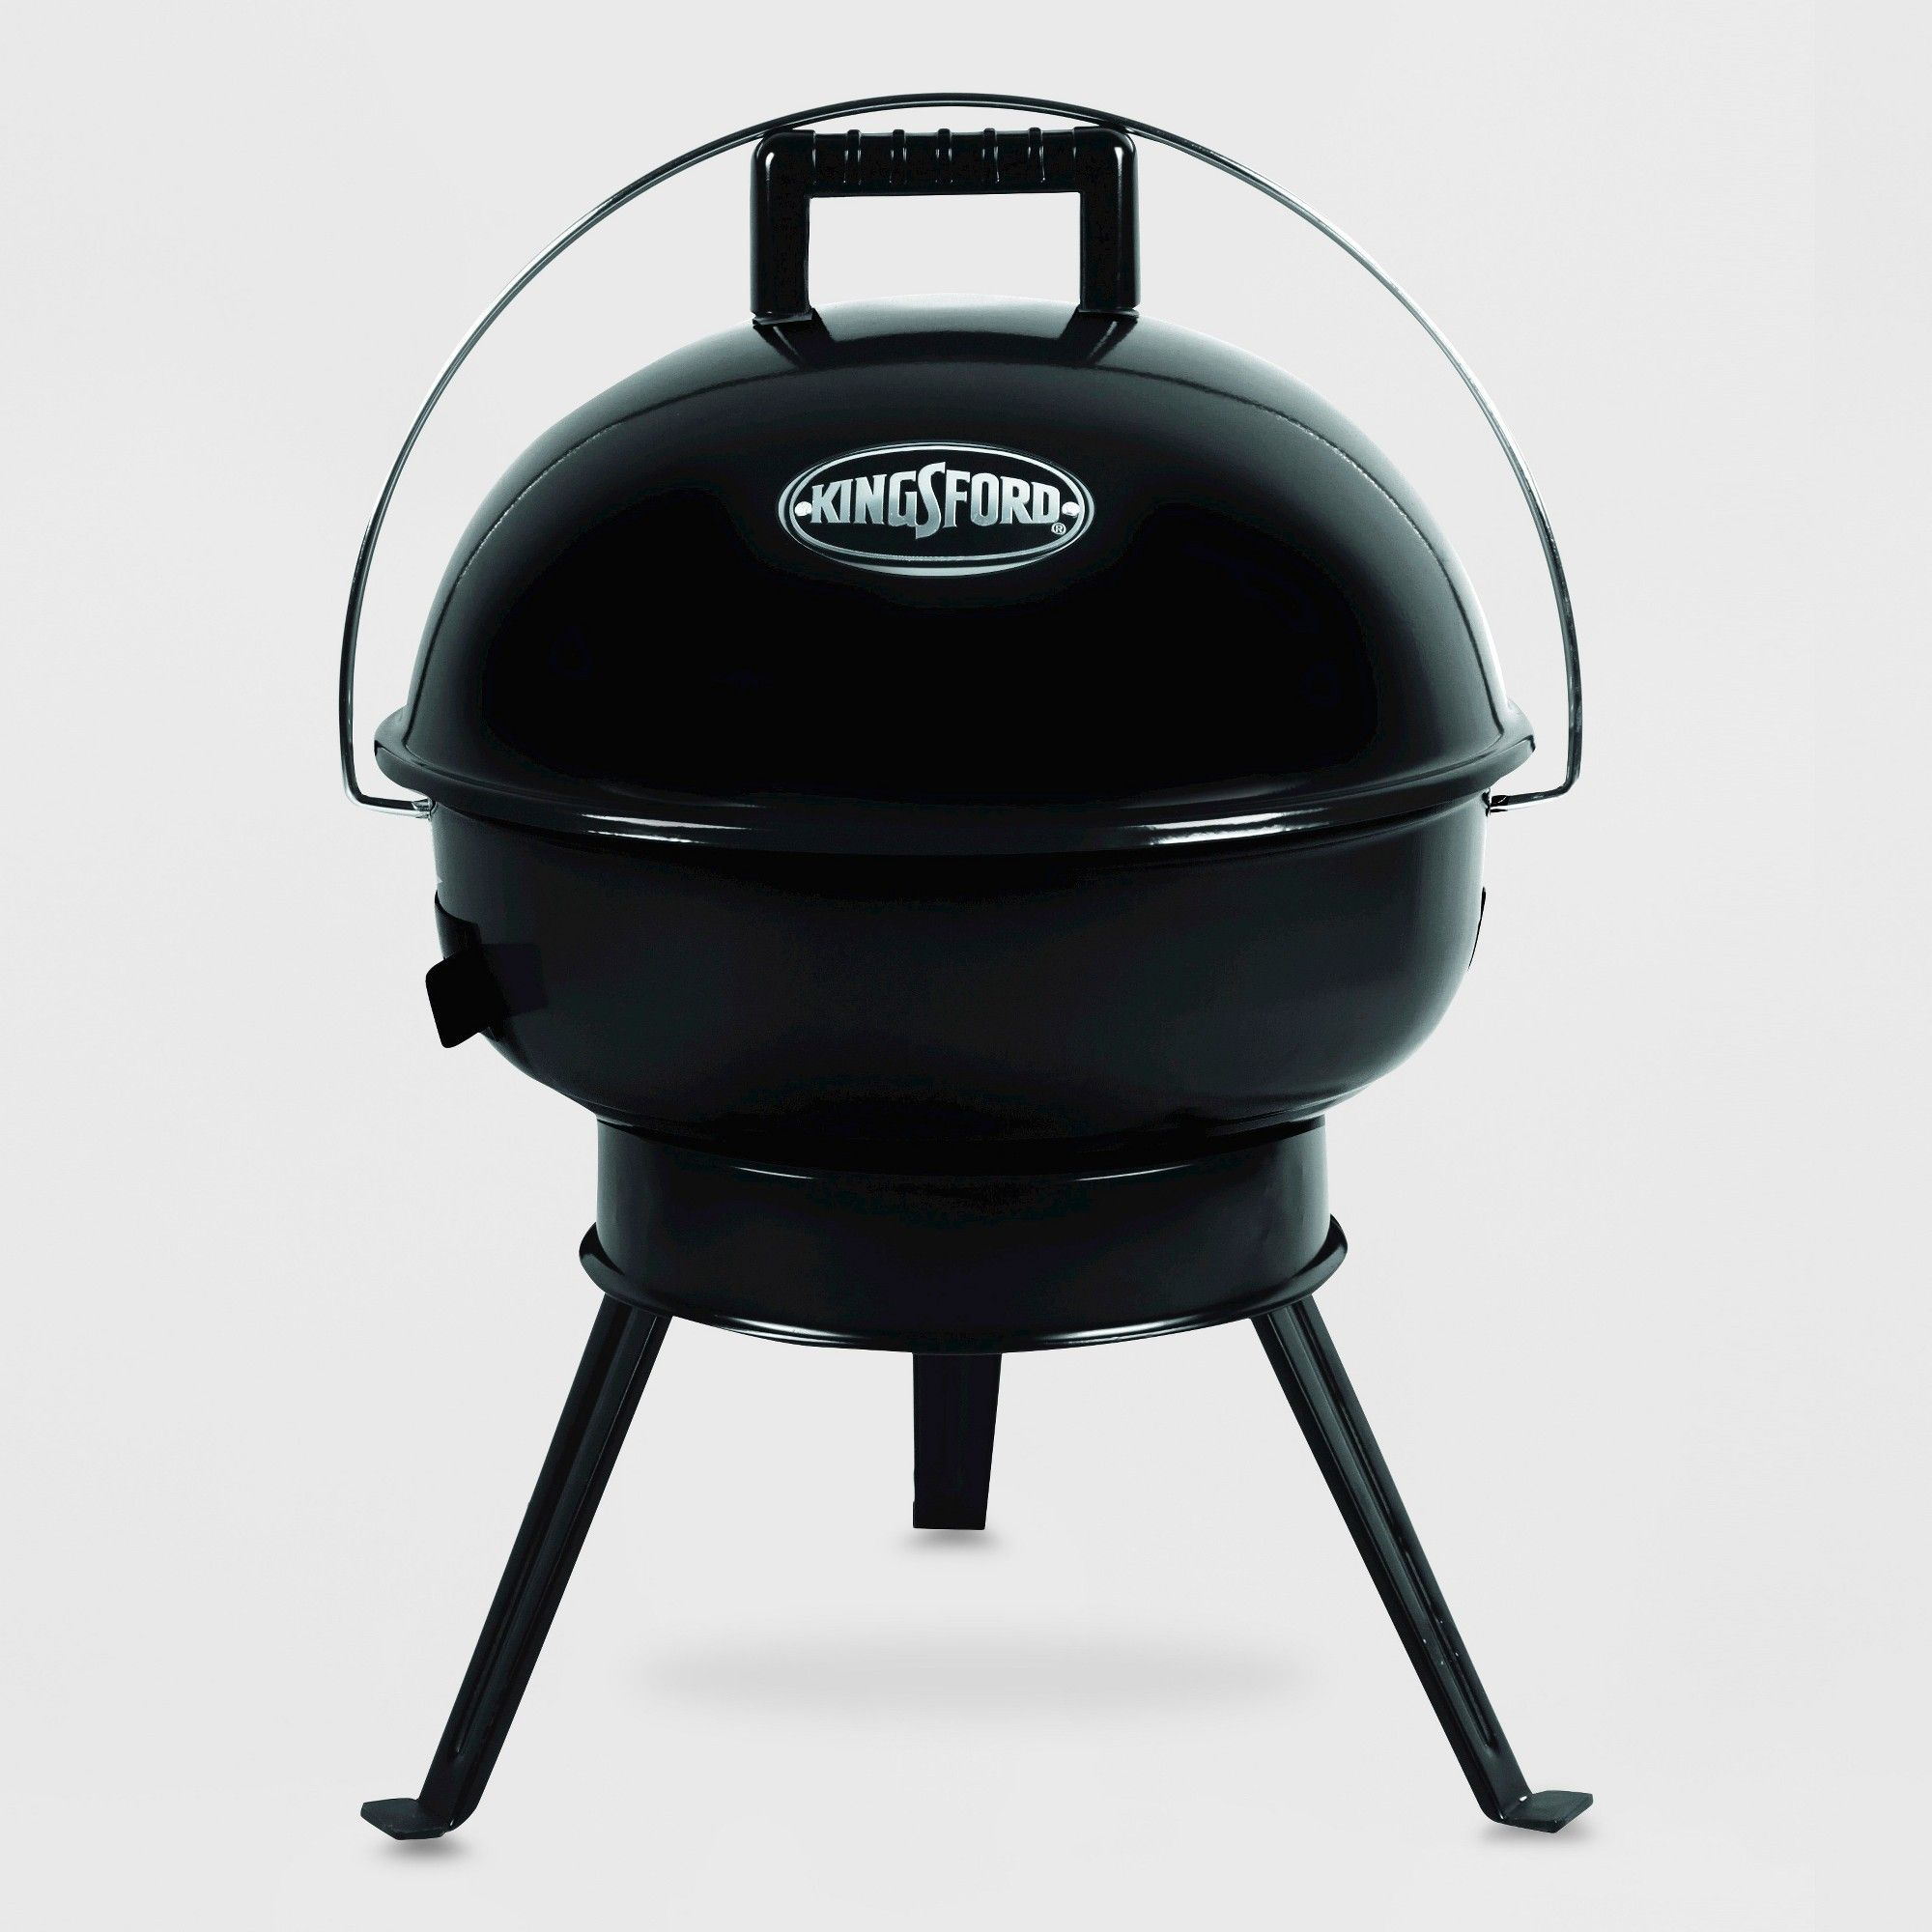 Kingsford 14black Portable Grill Black Tg2021302